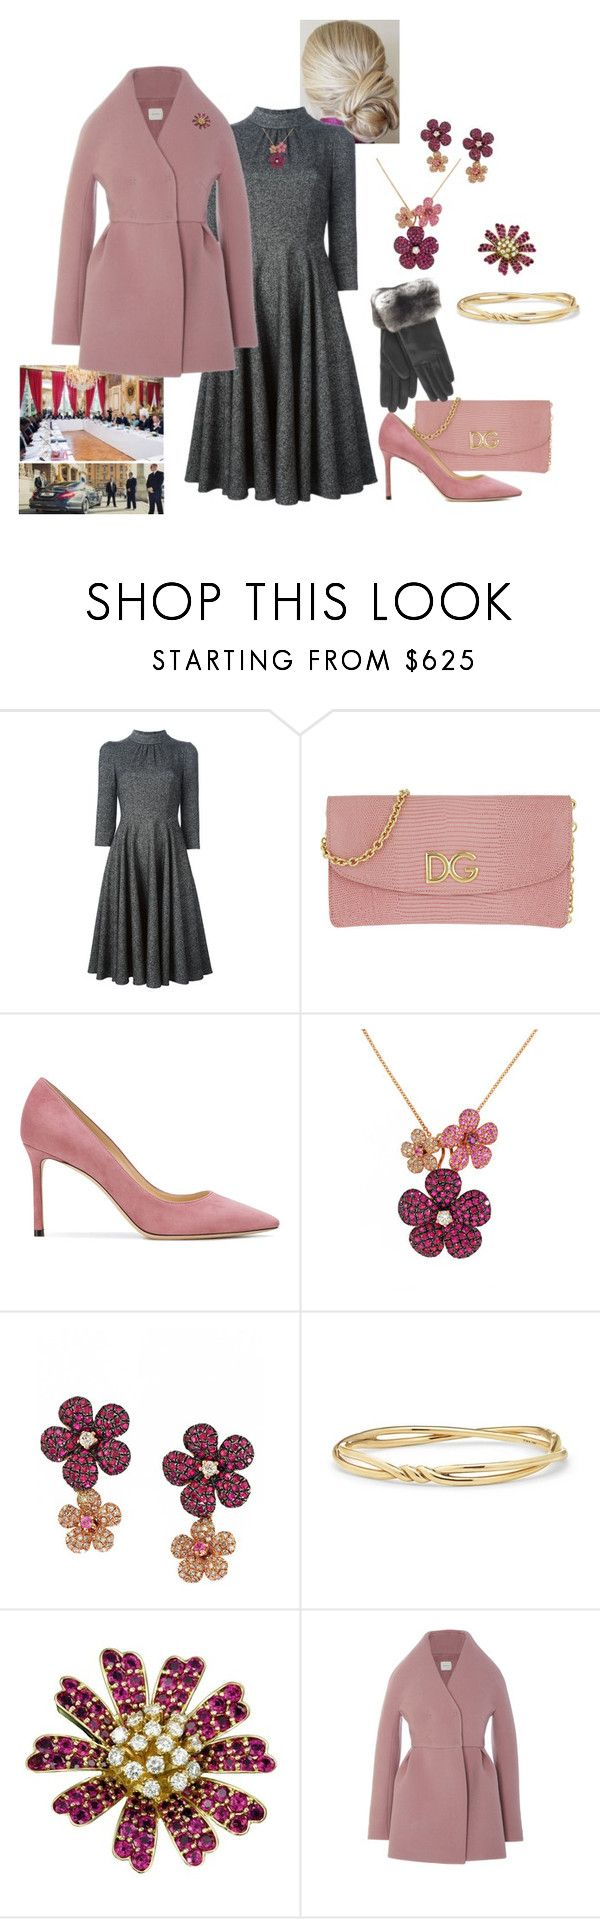 """Queen Rose attends a seminar on Antimicrobial Resistance"" by hm-queen-rose ❤ liked on Polyvore featuring Dolce&Gabbana, Jimmy Choo, Effy Jewelry, David Yurman and Delpozo"